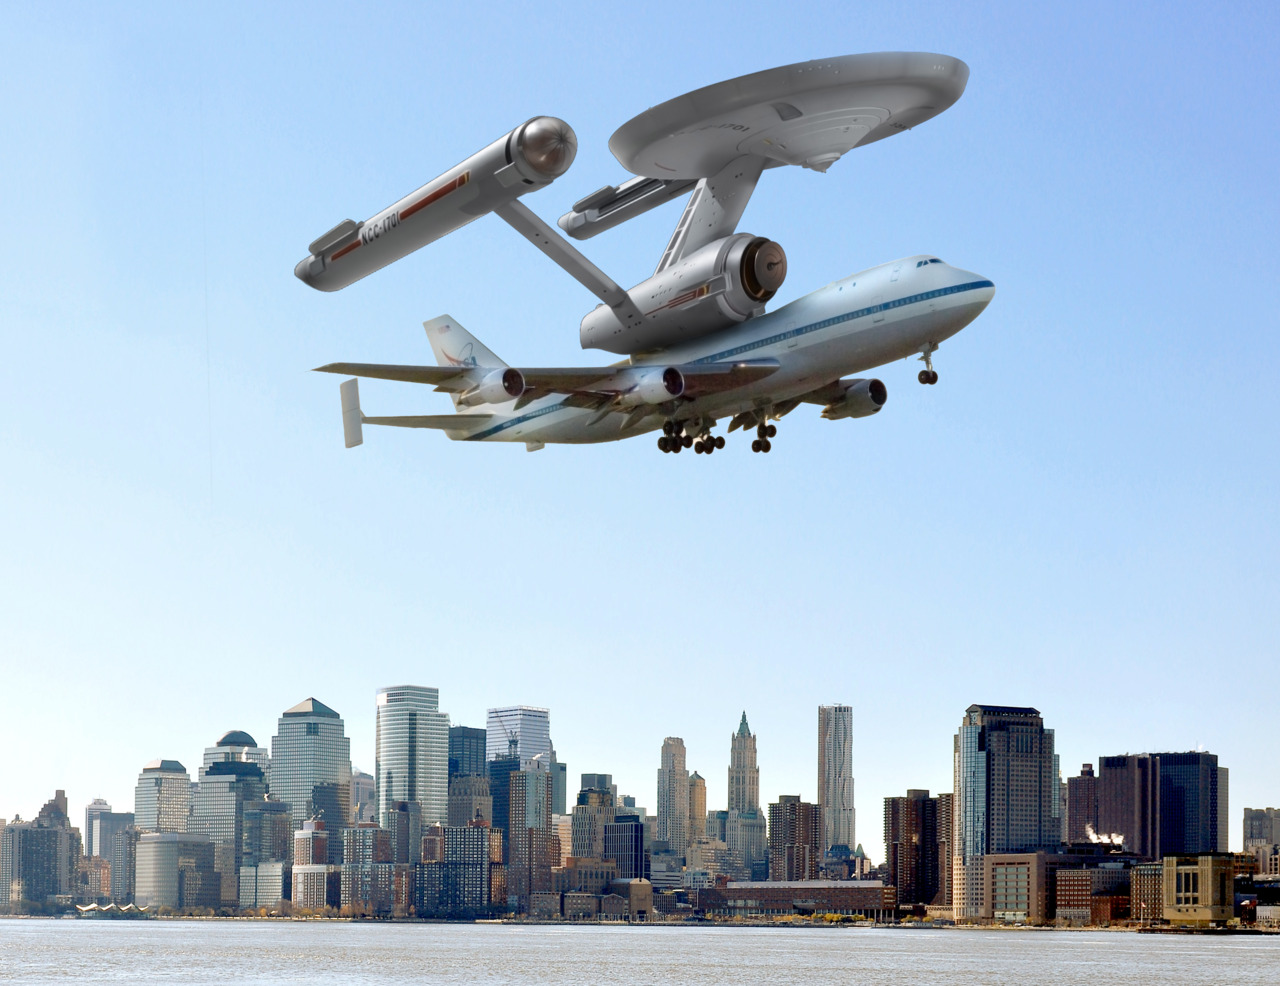 Space Shuttle Enterprise to Land at JFK atop Shuttle ...